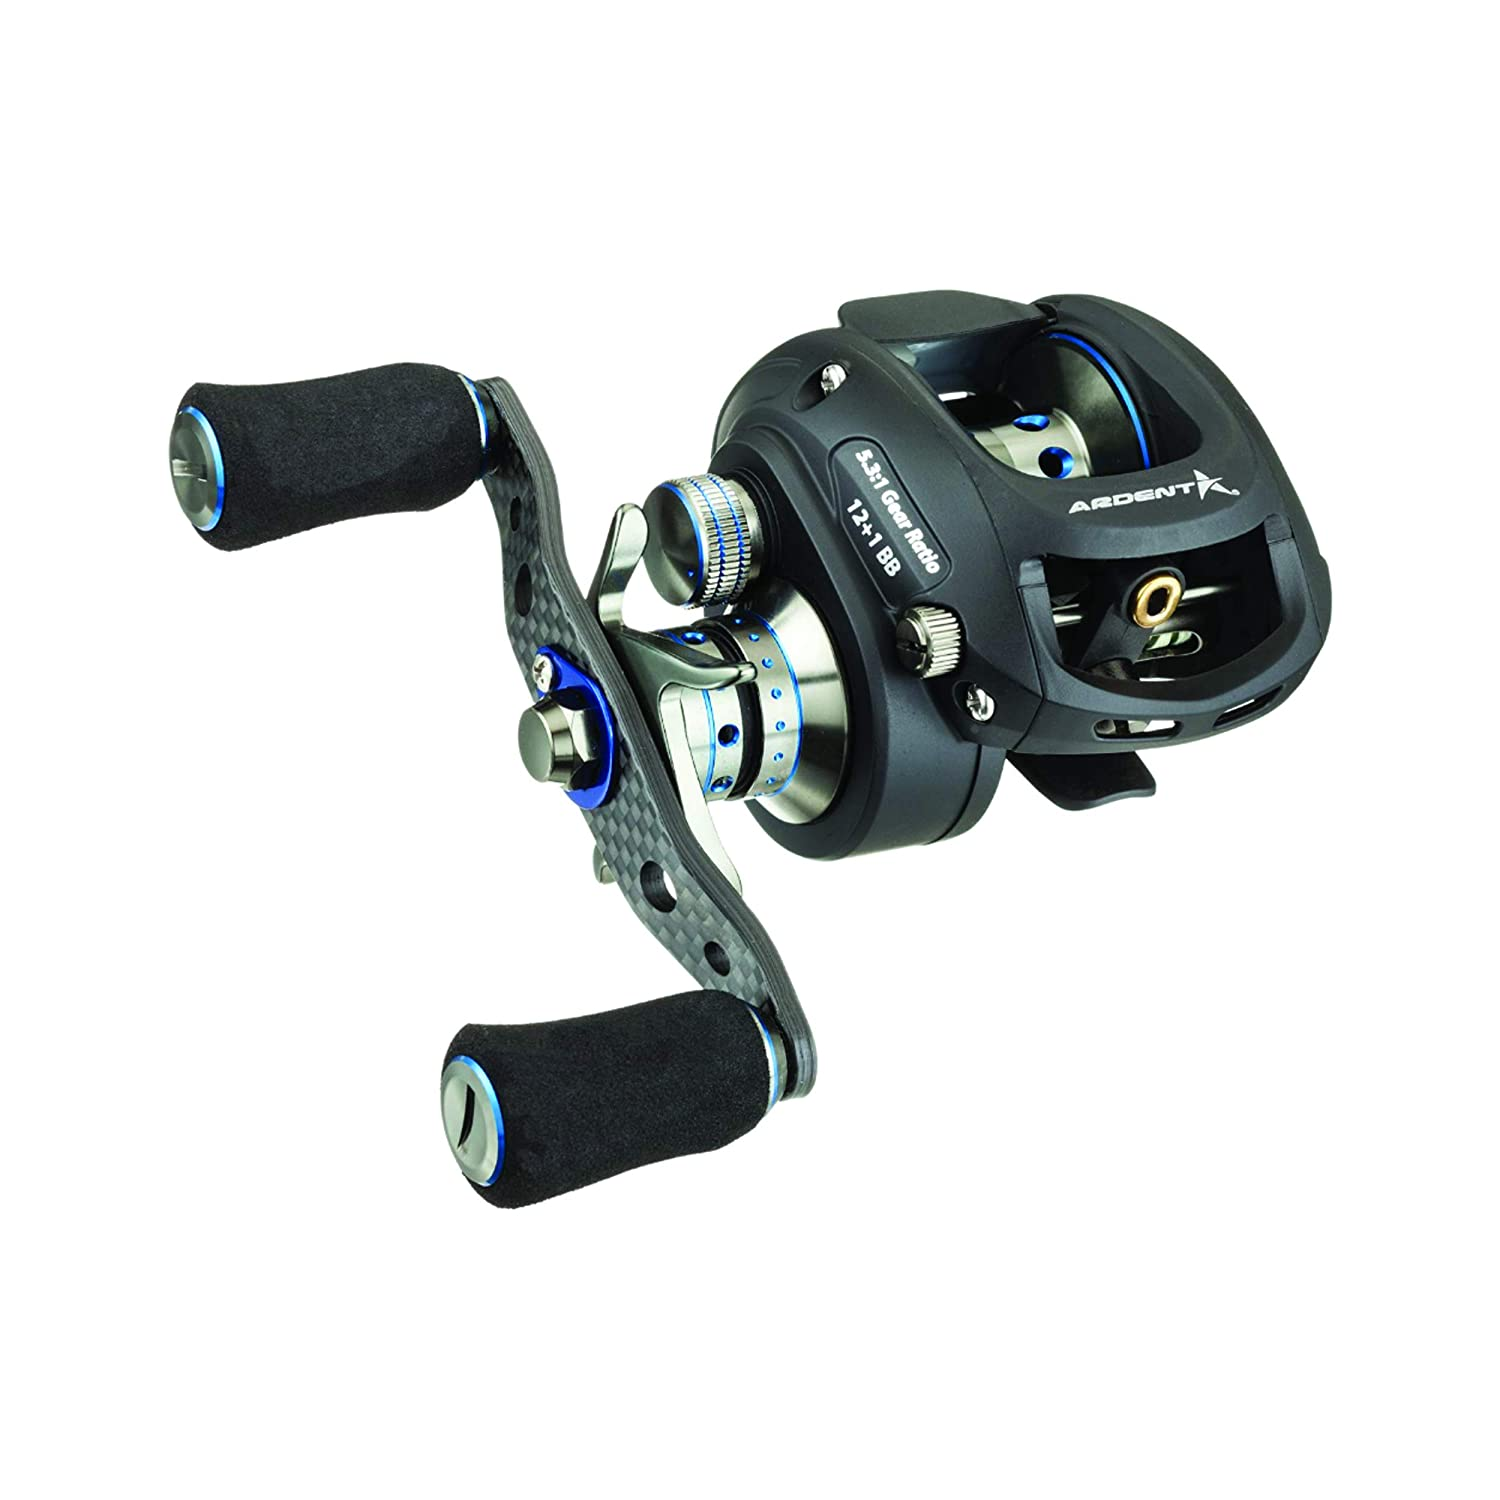 Ardent Apex Elite Fishing Reel with 6.5 1 Gear Ratio